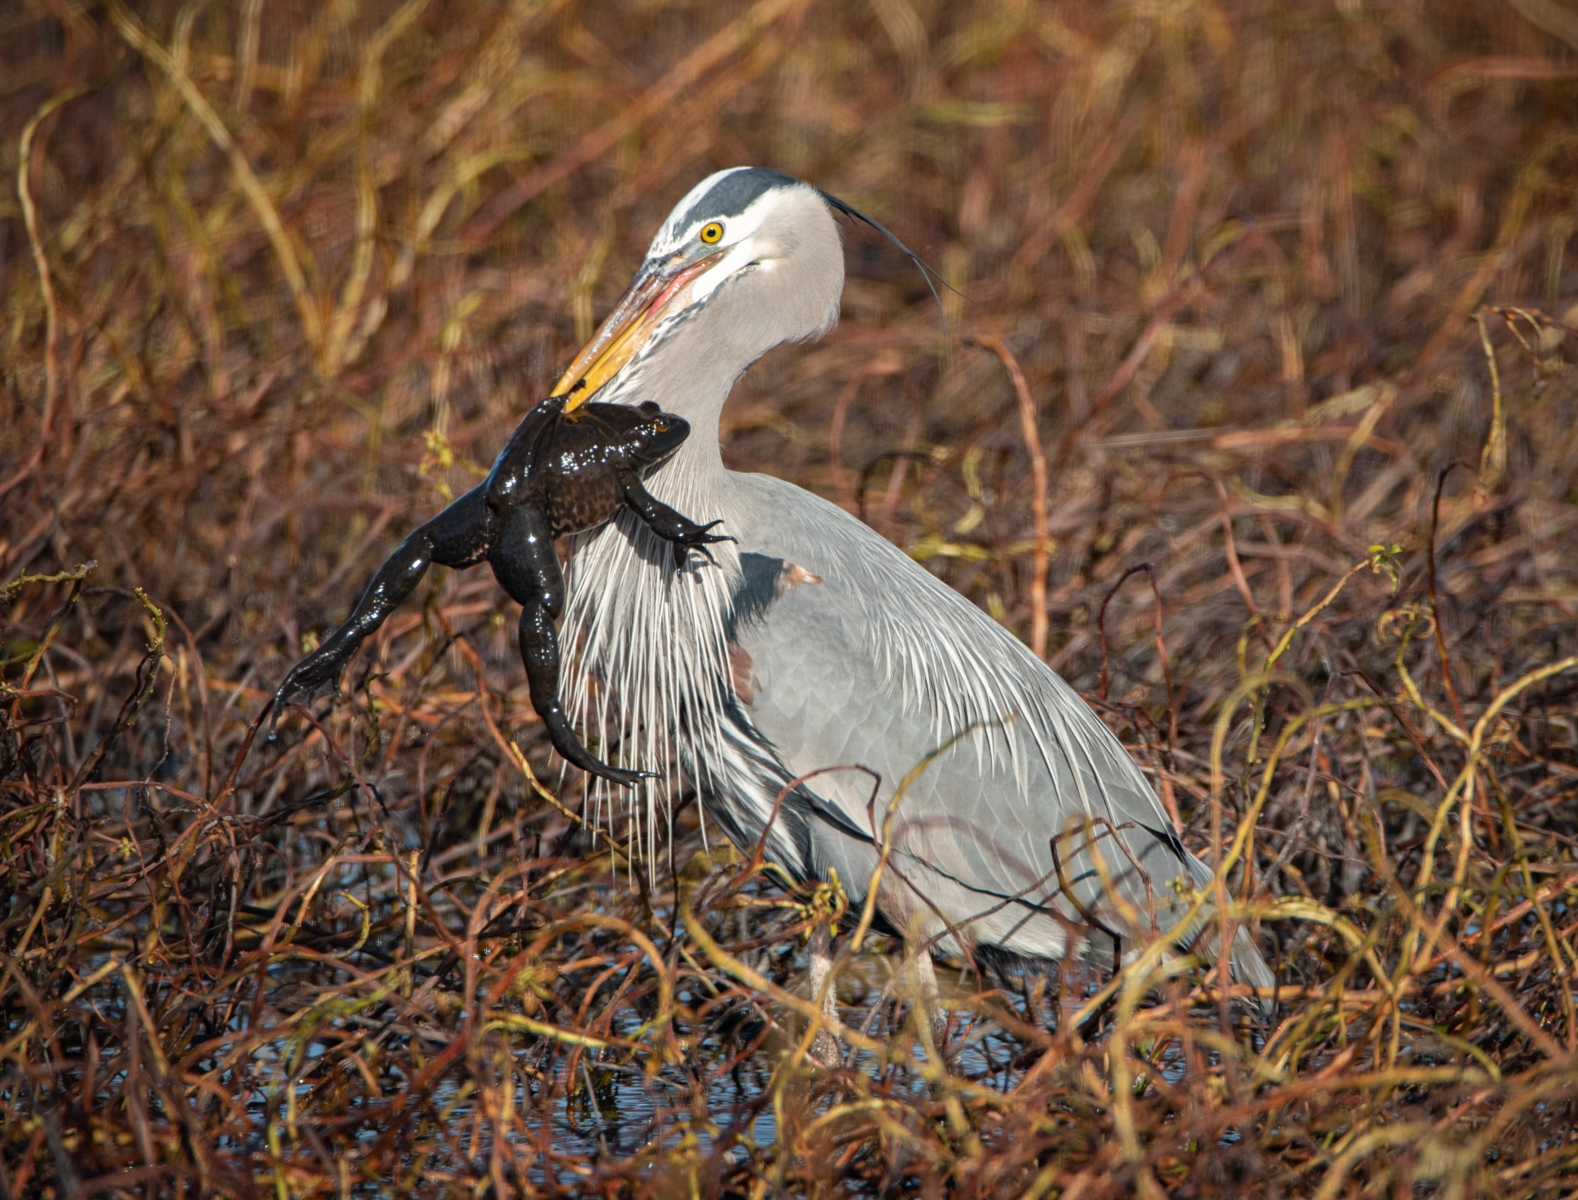 Great-Blue-Heron-stabbed-an-American-Bullfrog-Colusa-Wildlife-Refuge-NI-Best-in-Division-by-Stephen-Busch-Fellow-CC